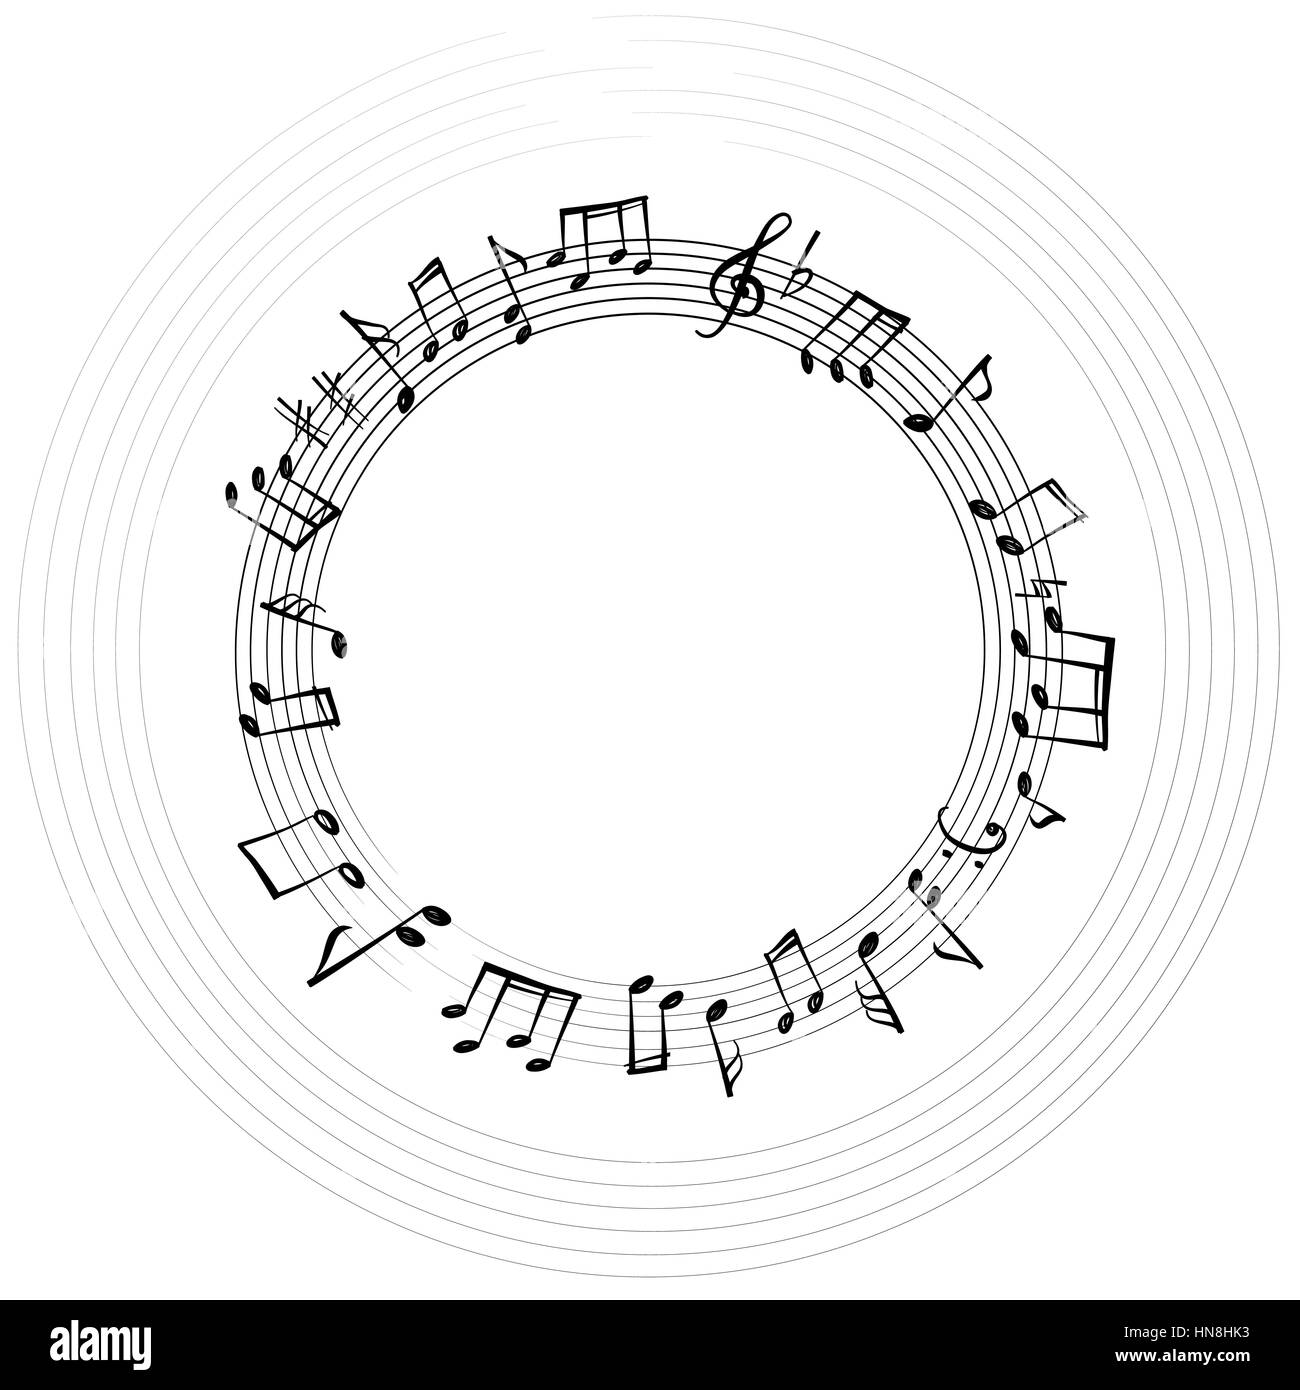 Music notes border. Musical background. Music style round shape ...